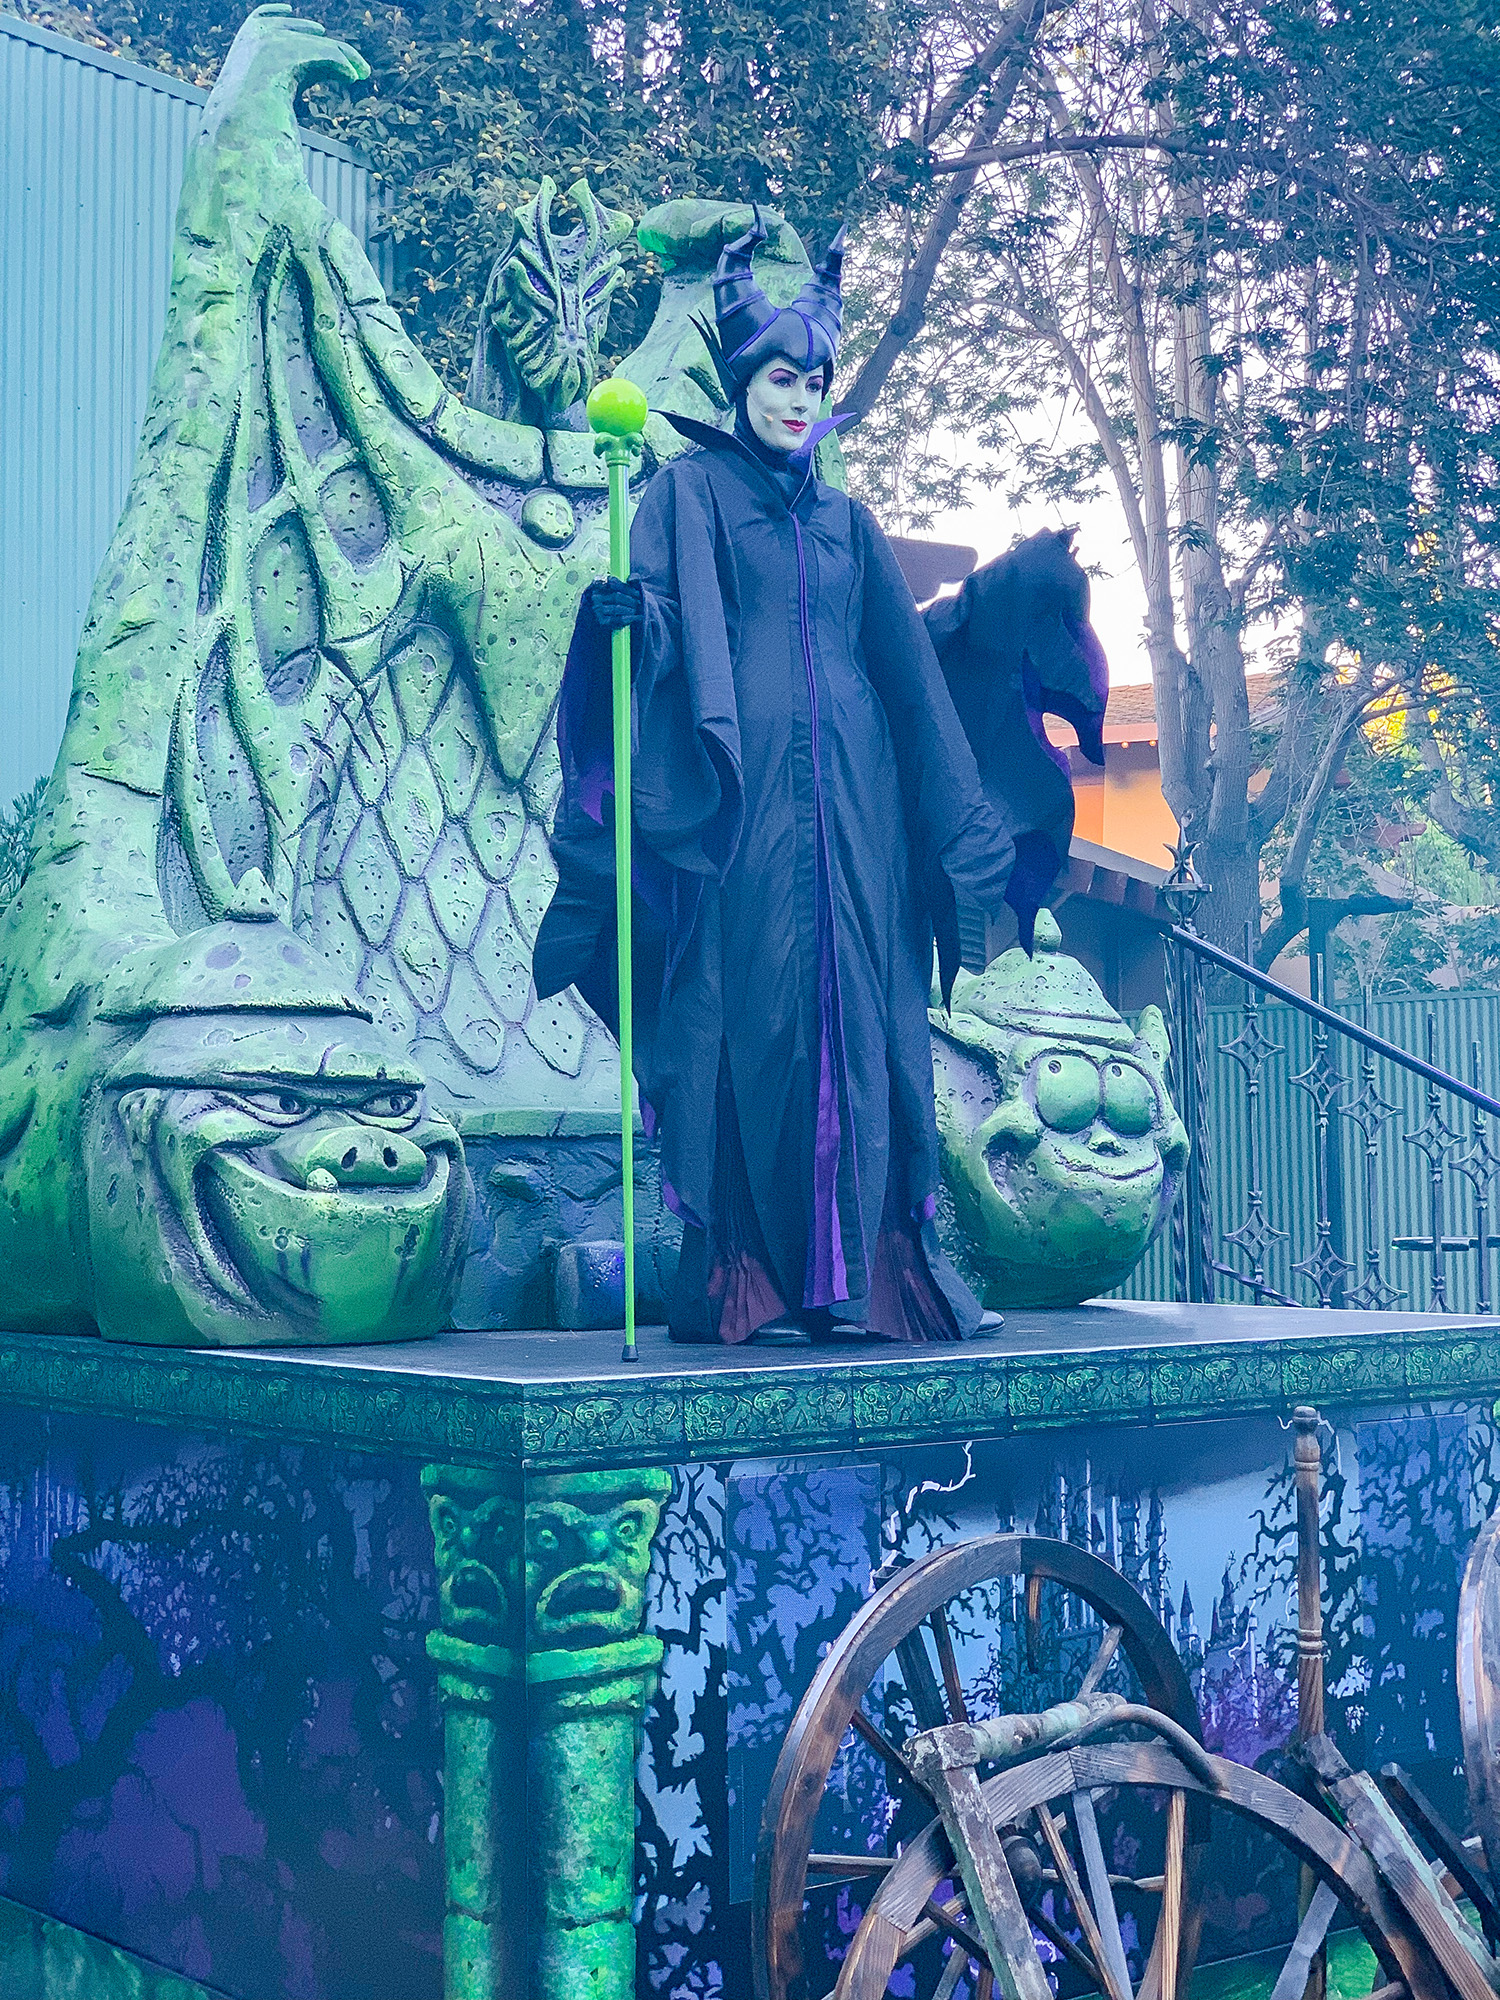 Are you doing the Oogie Boogie Bash this year? The immersive treat trails are AMAZING!